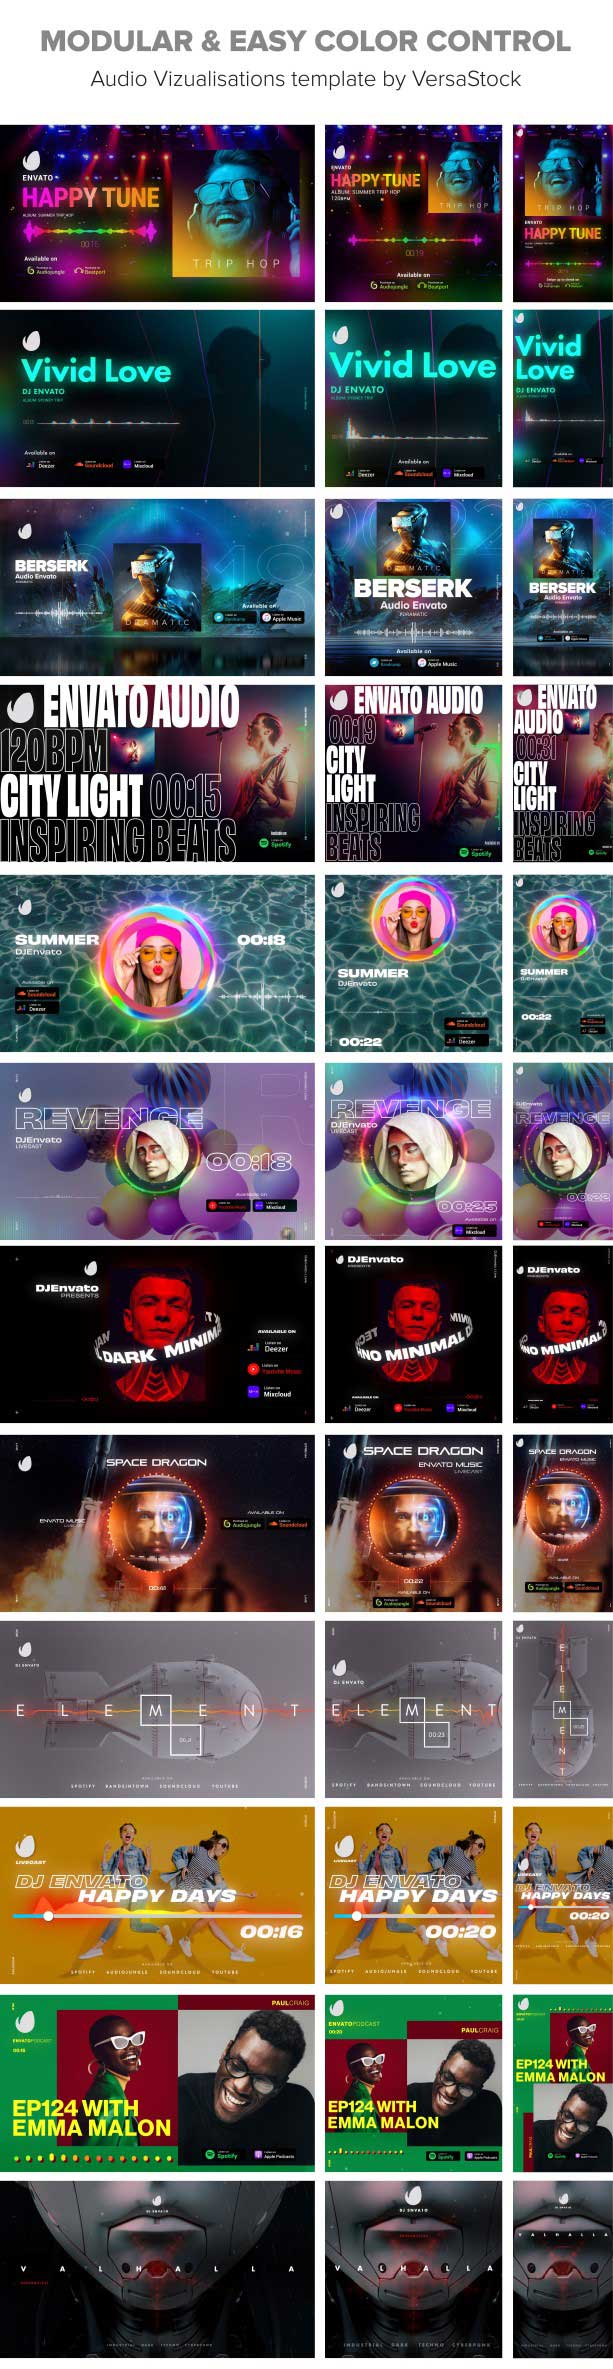 contact sheet of audio visualisation modules with standart vertical and square modules